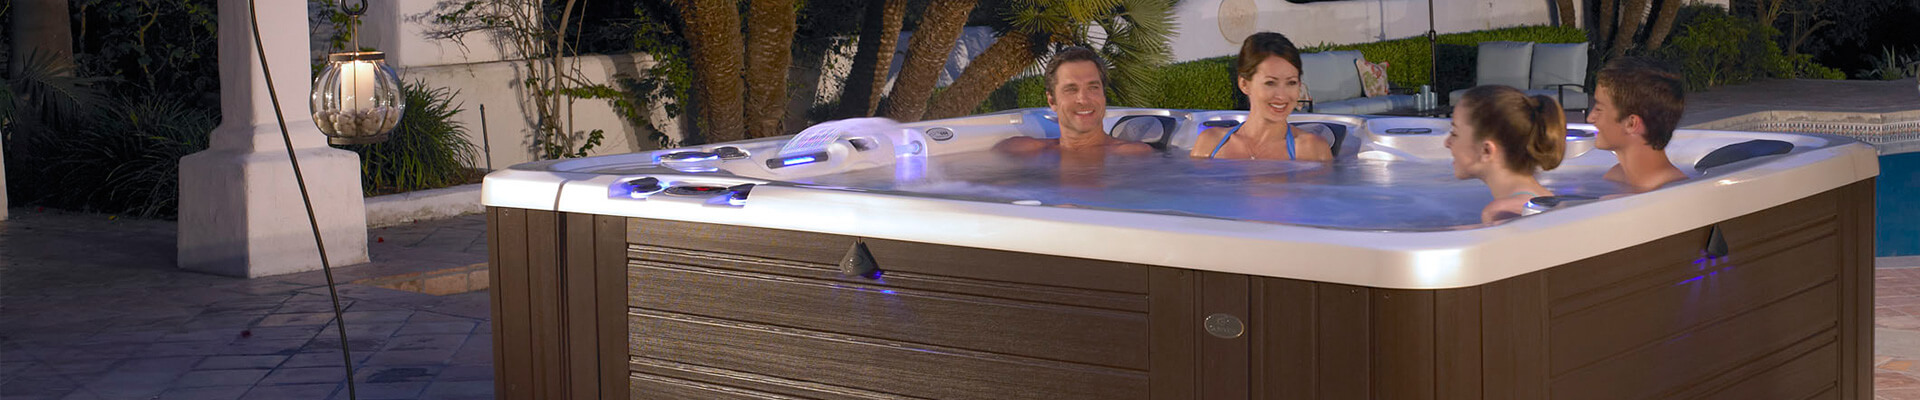 3 Ways to Increase Optimism, Best Hot Tub Prices Steamboat Springs